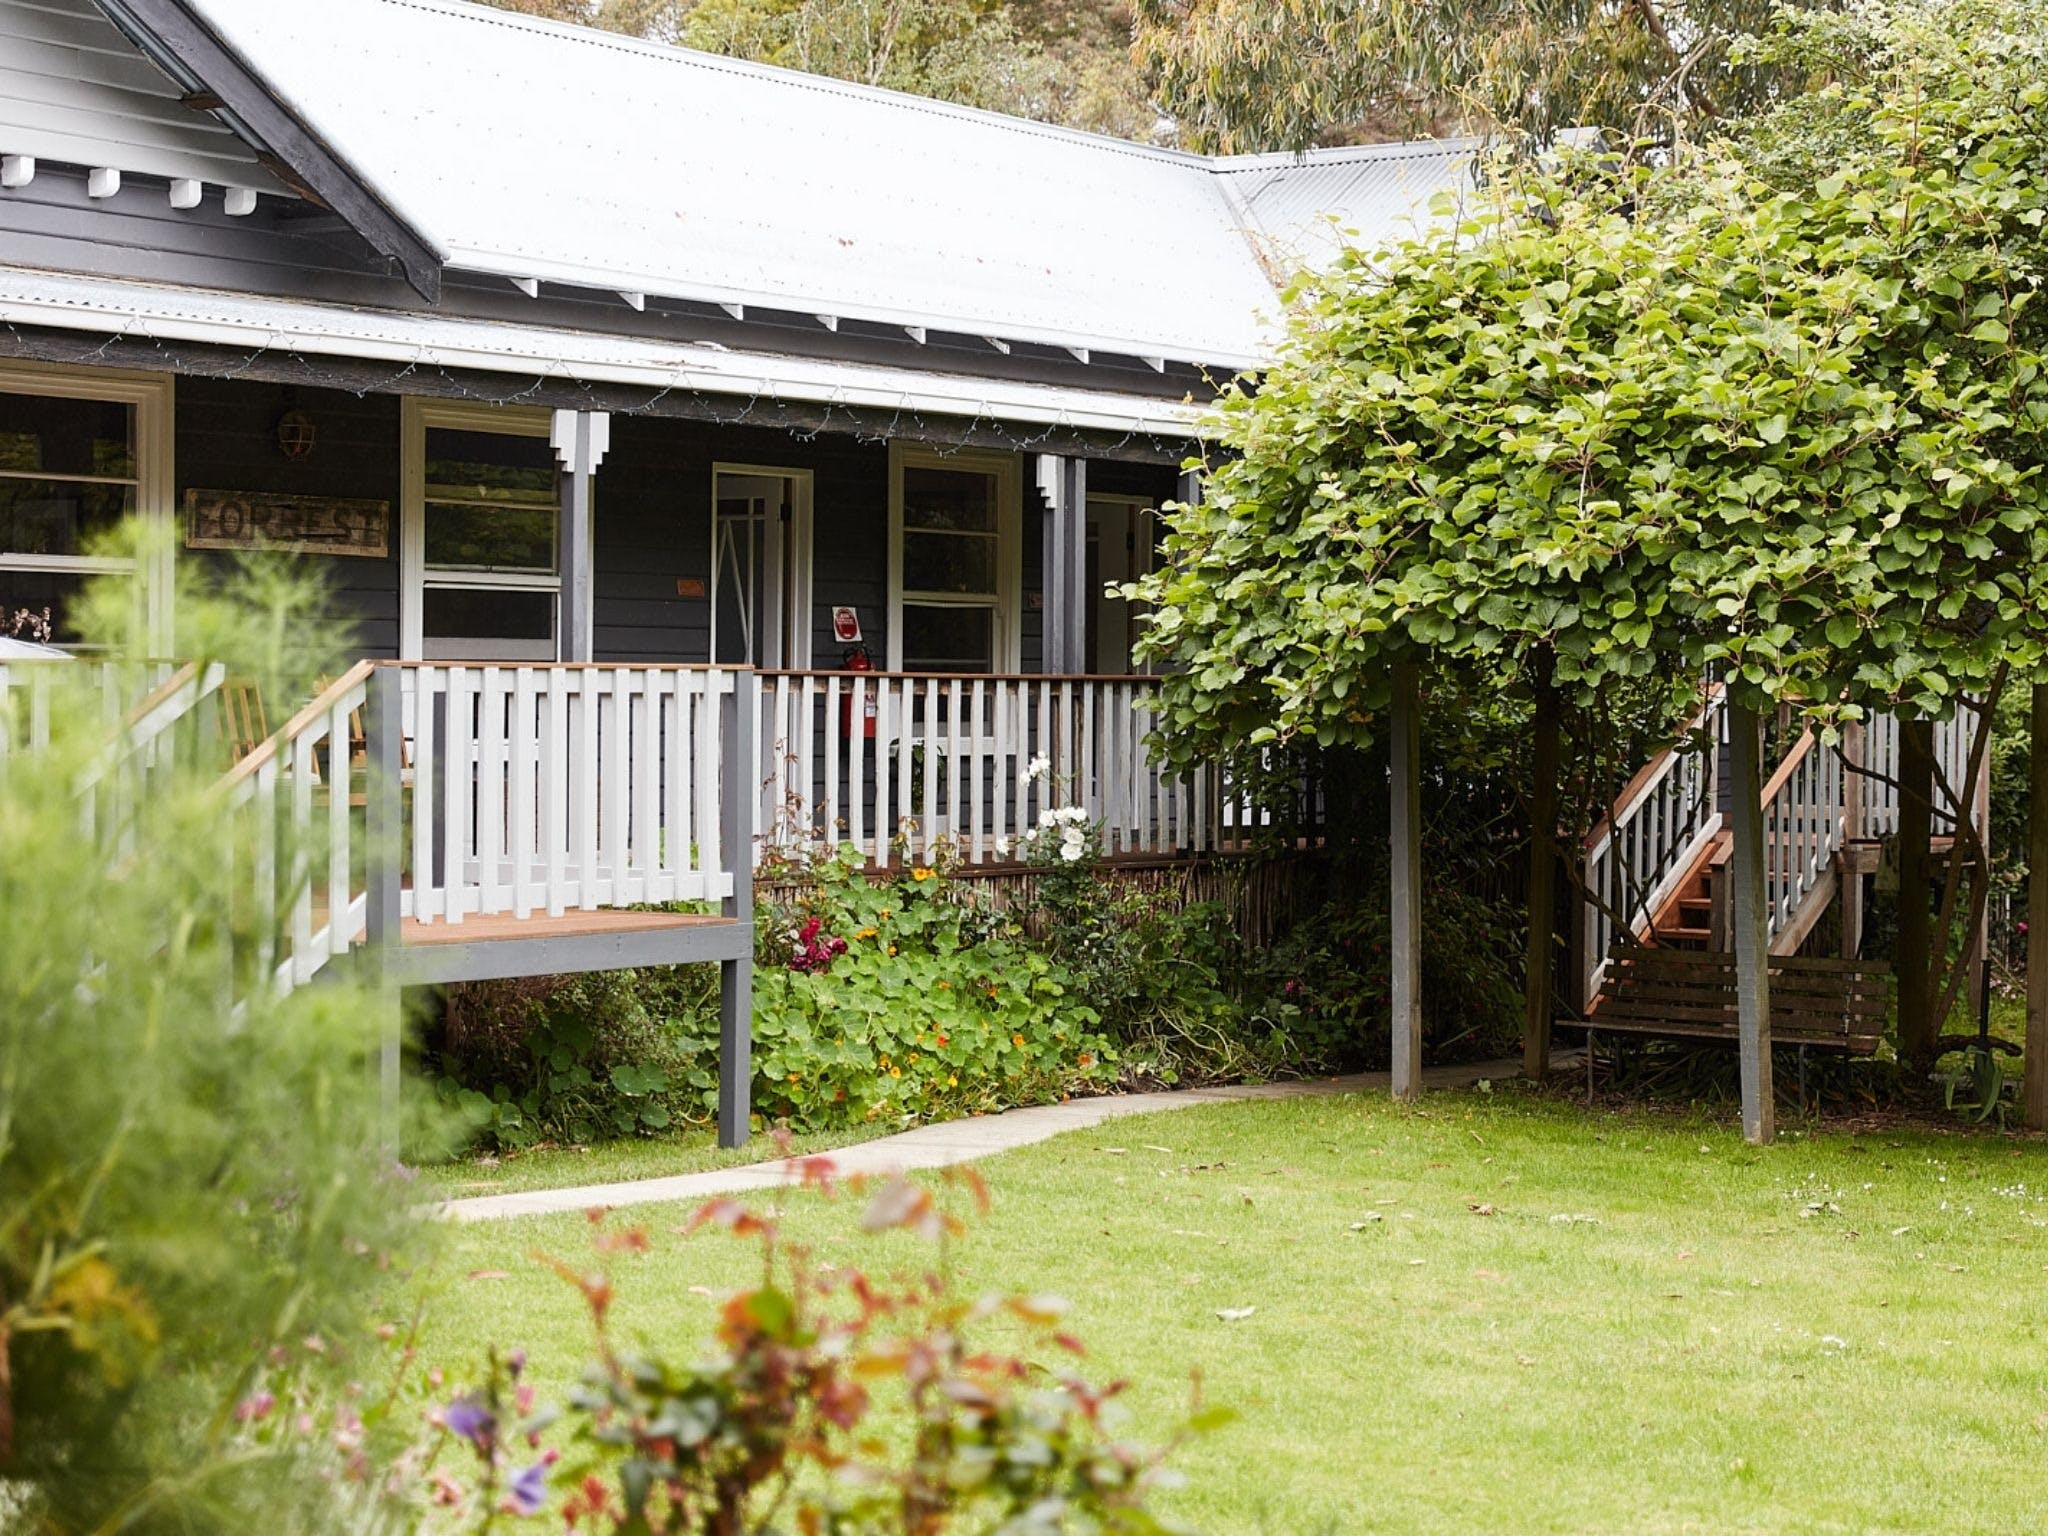 Forrest Guesthouse - Tourism Canberra